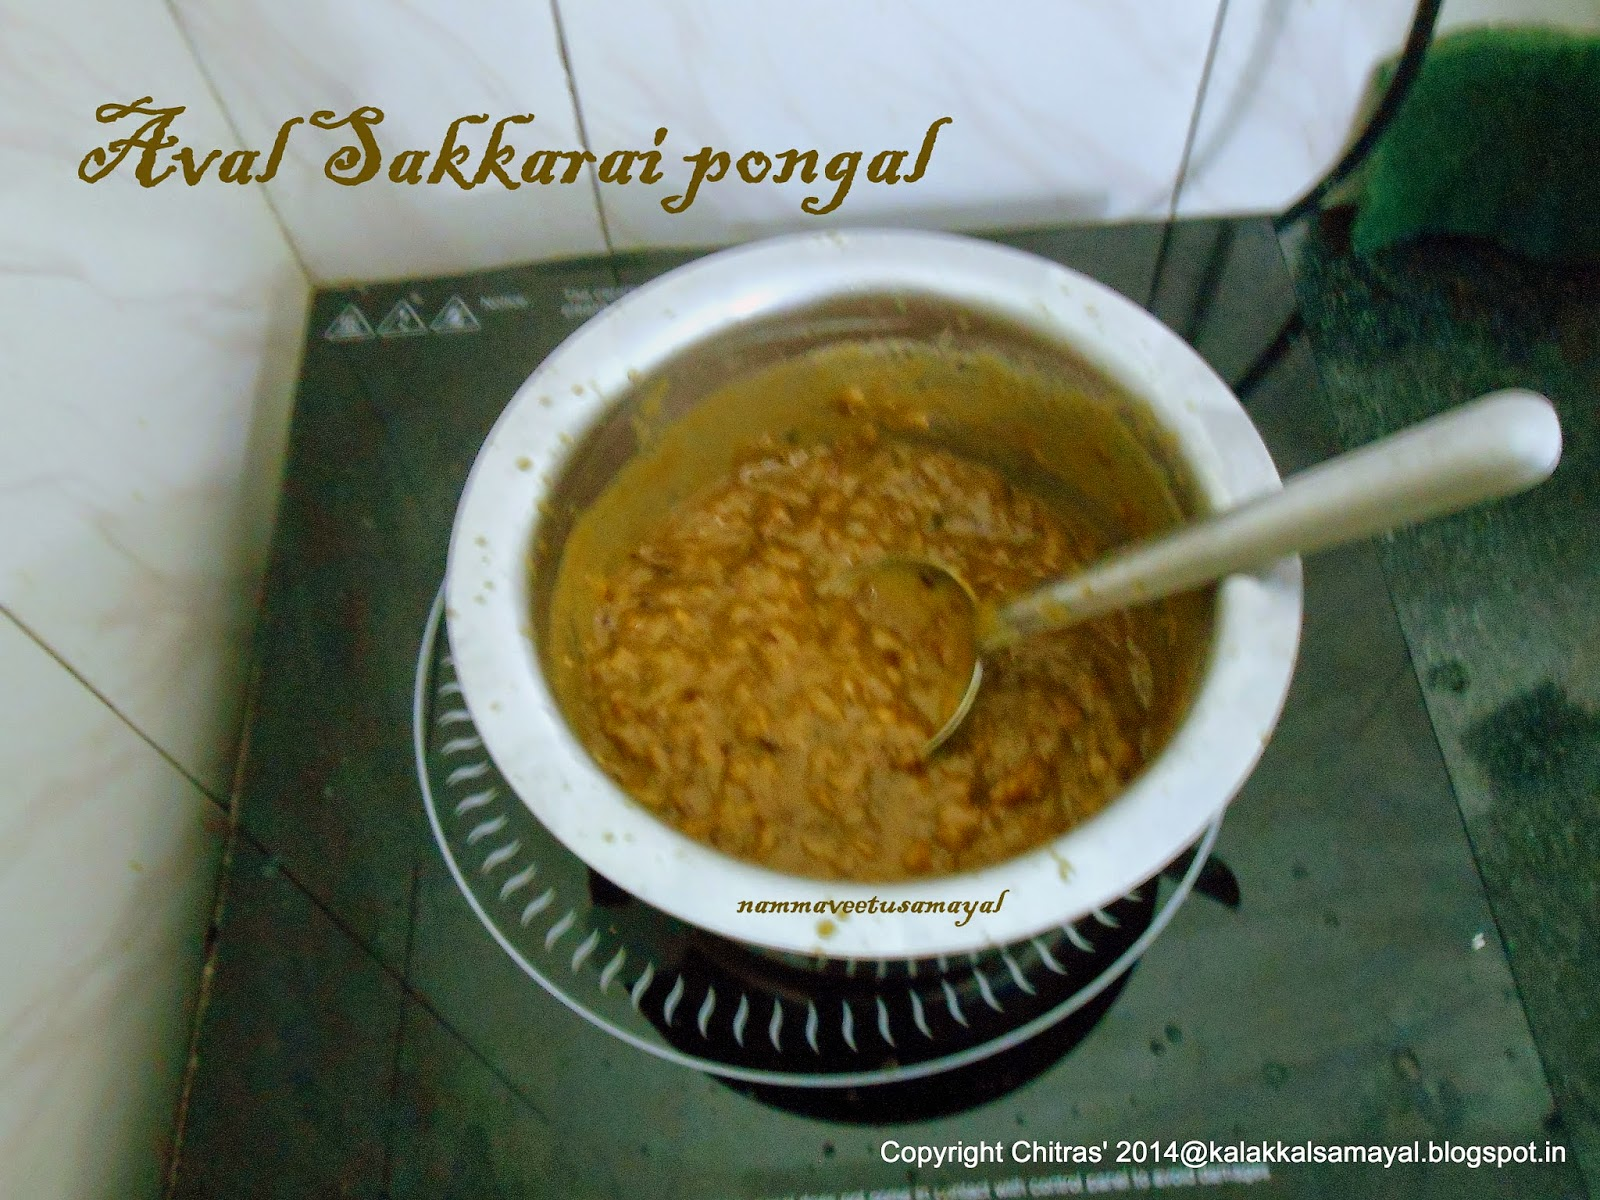 Stir Rice flakes sweet pongal